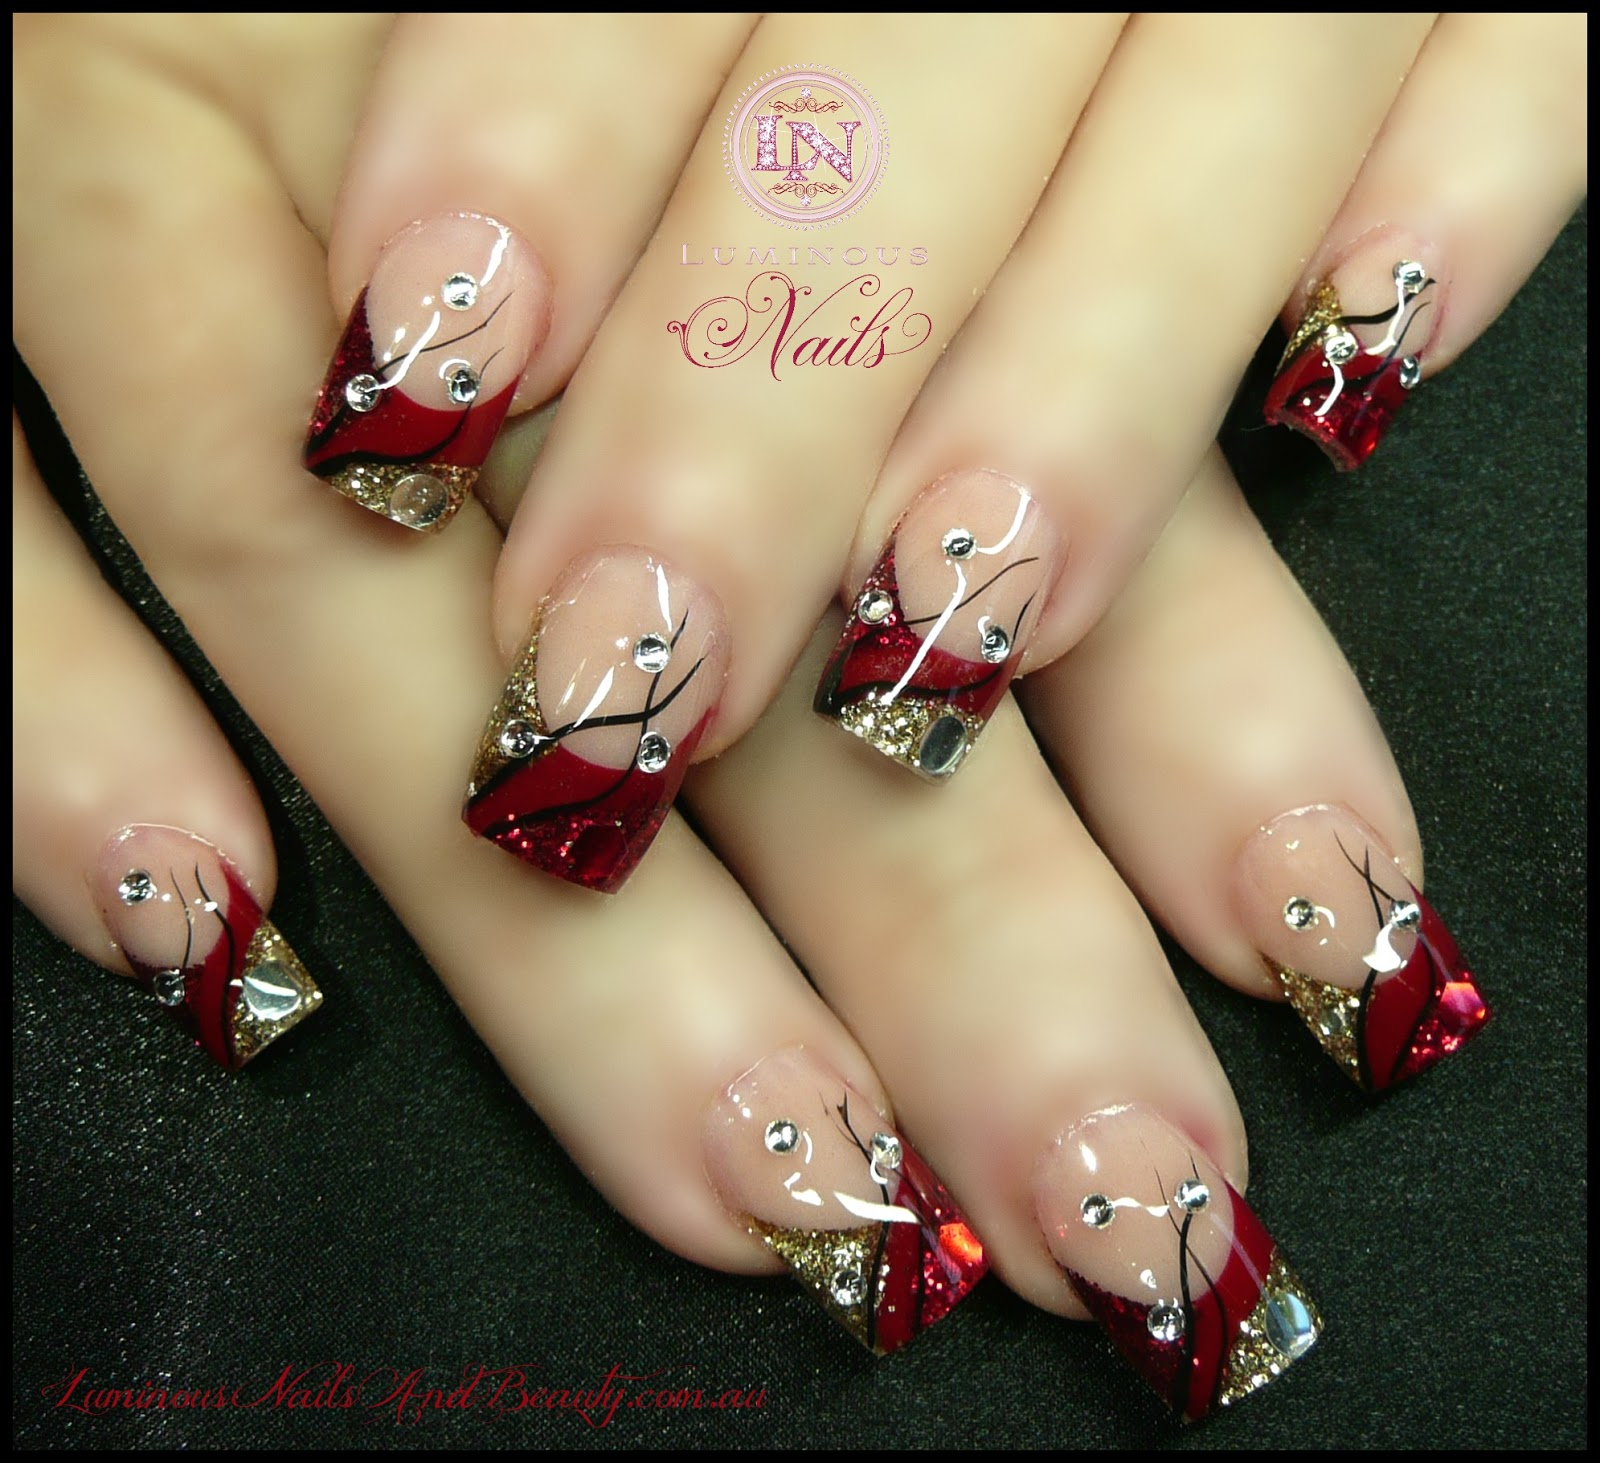 The Excellent Black nails with glitter gold design Photograph